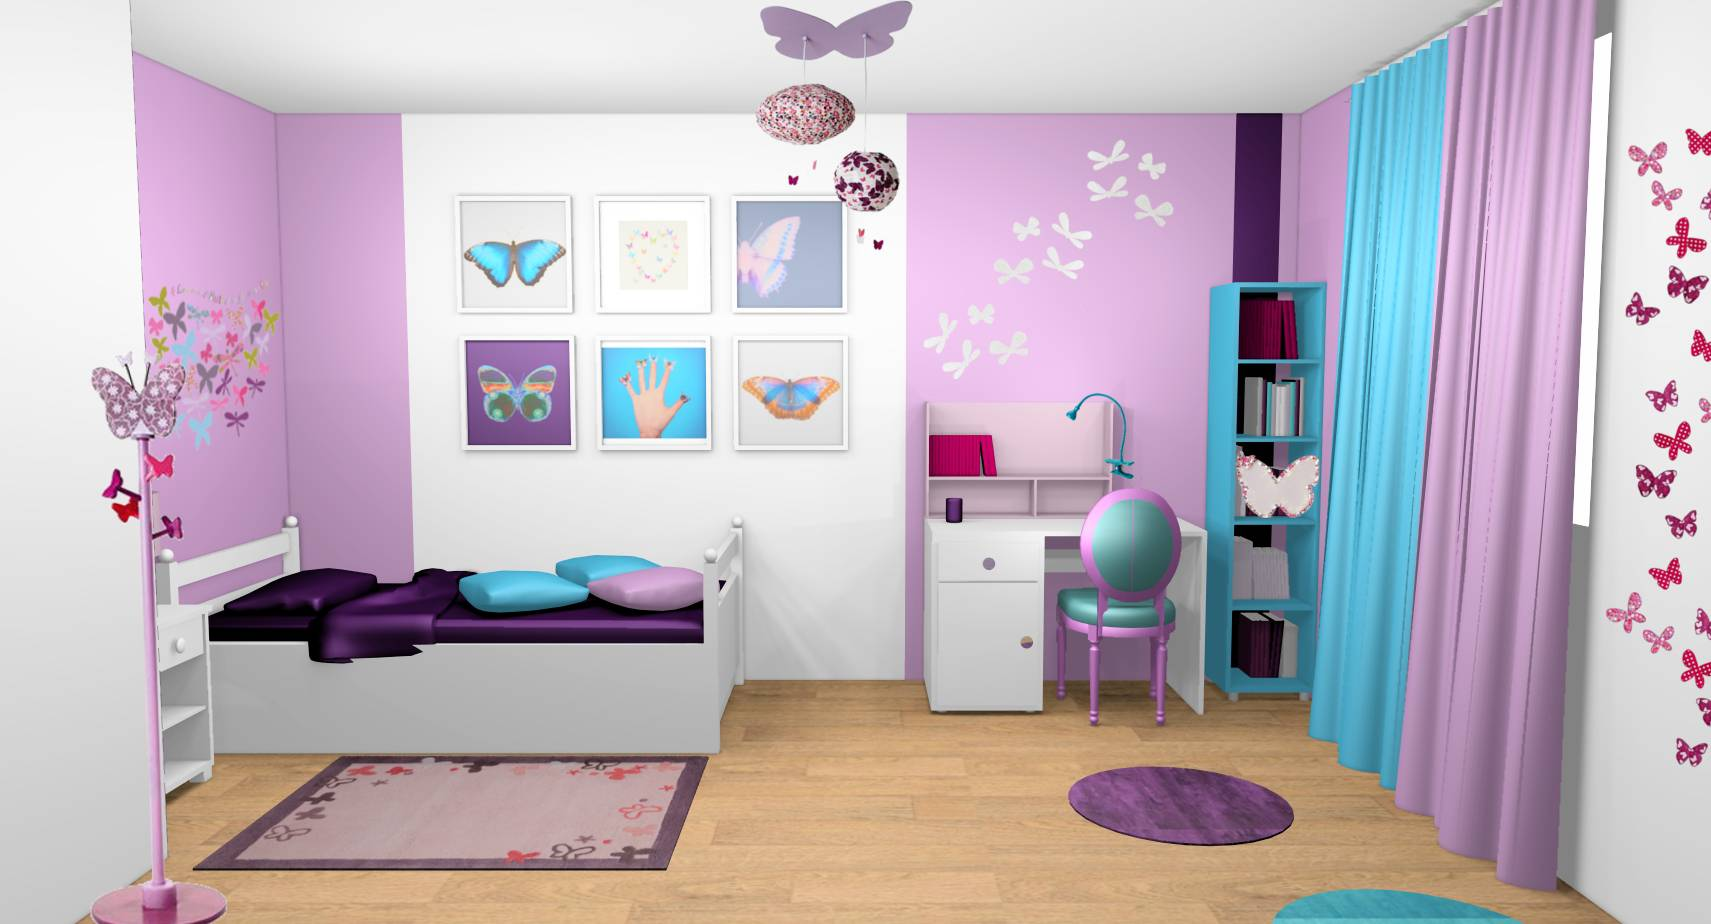 Decoration interieur chambre fille for Peinture design interieur